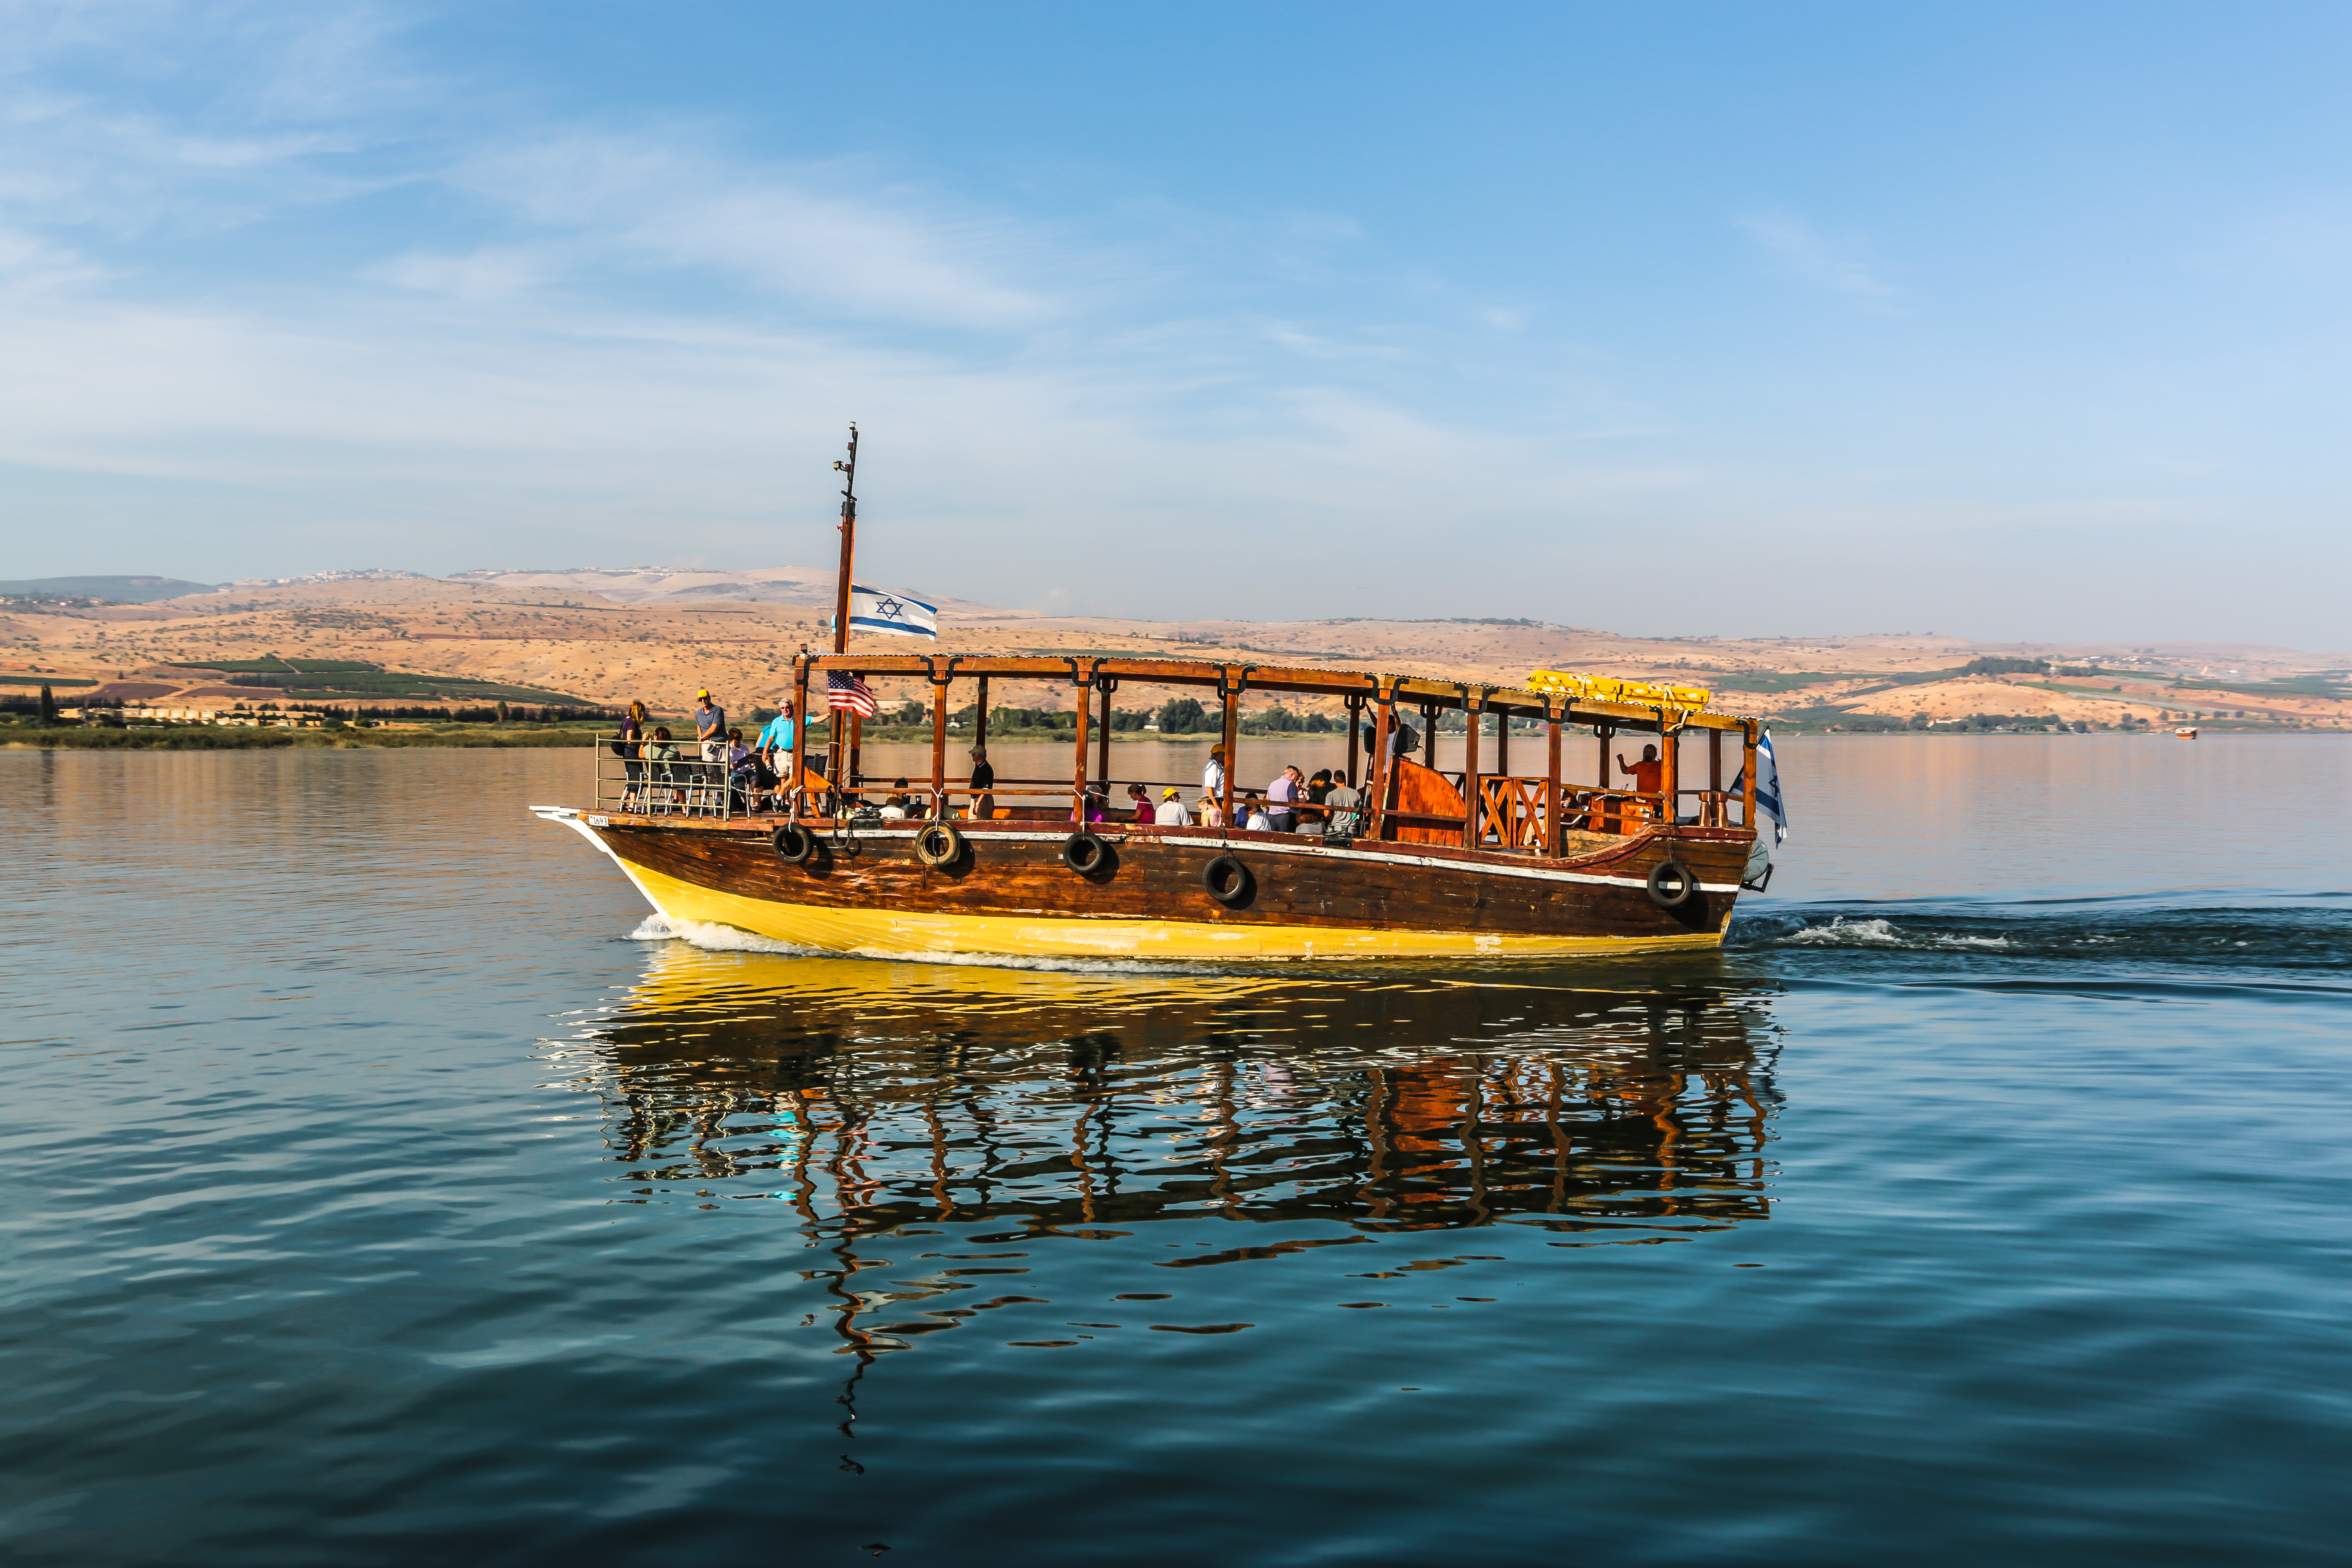 Holy Land Christian Tour of Israel [49 Divine Pics]